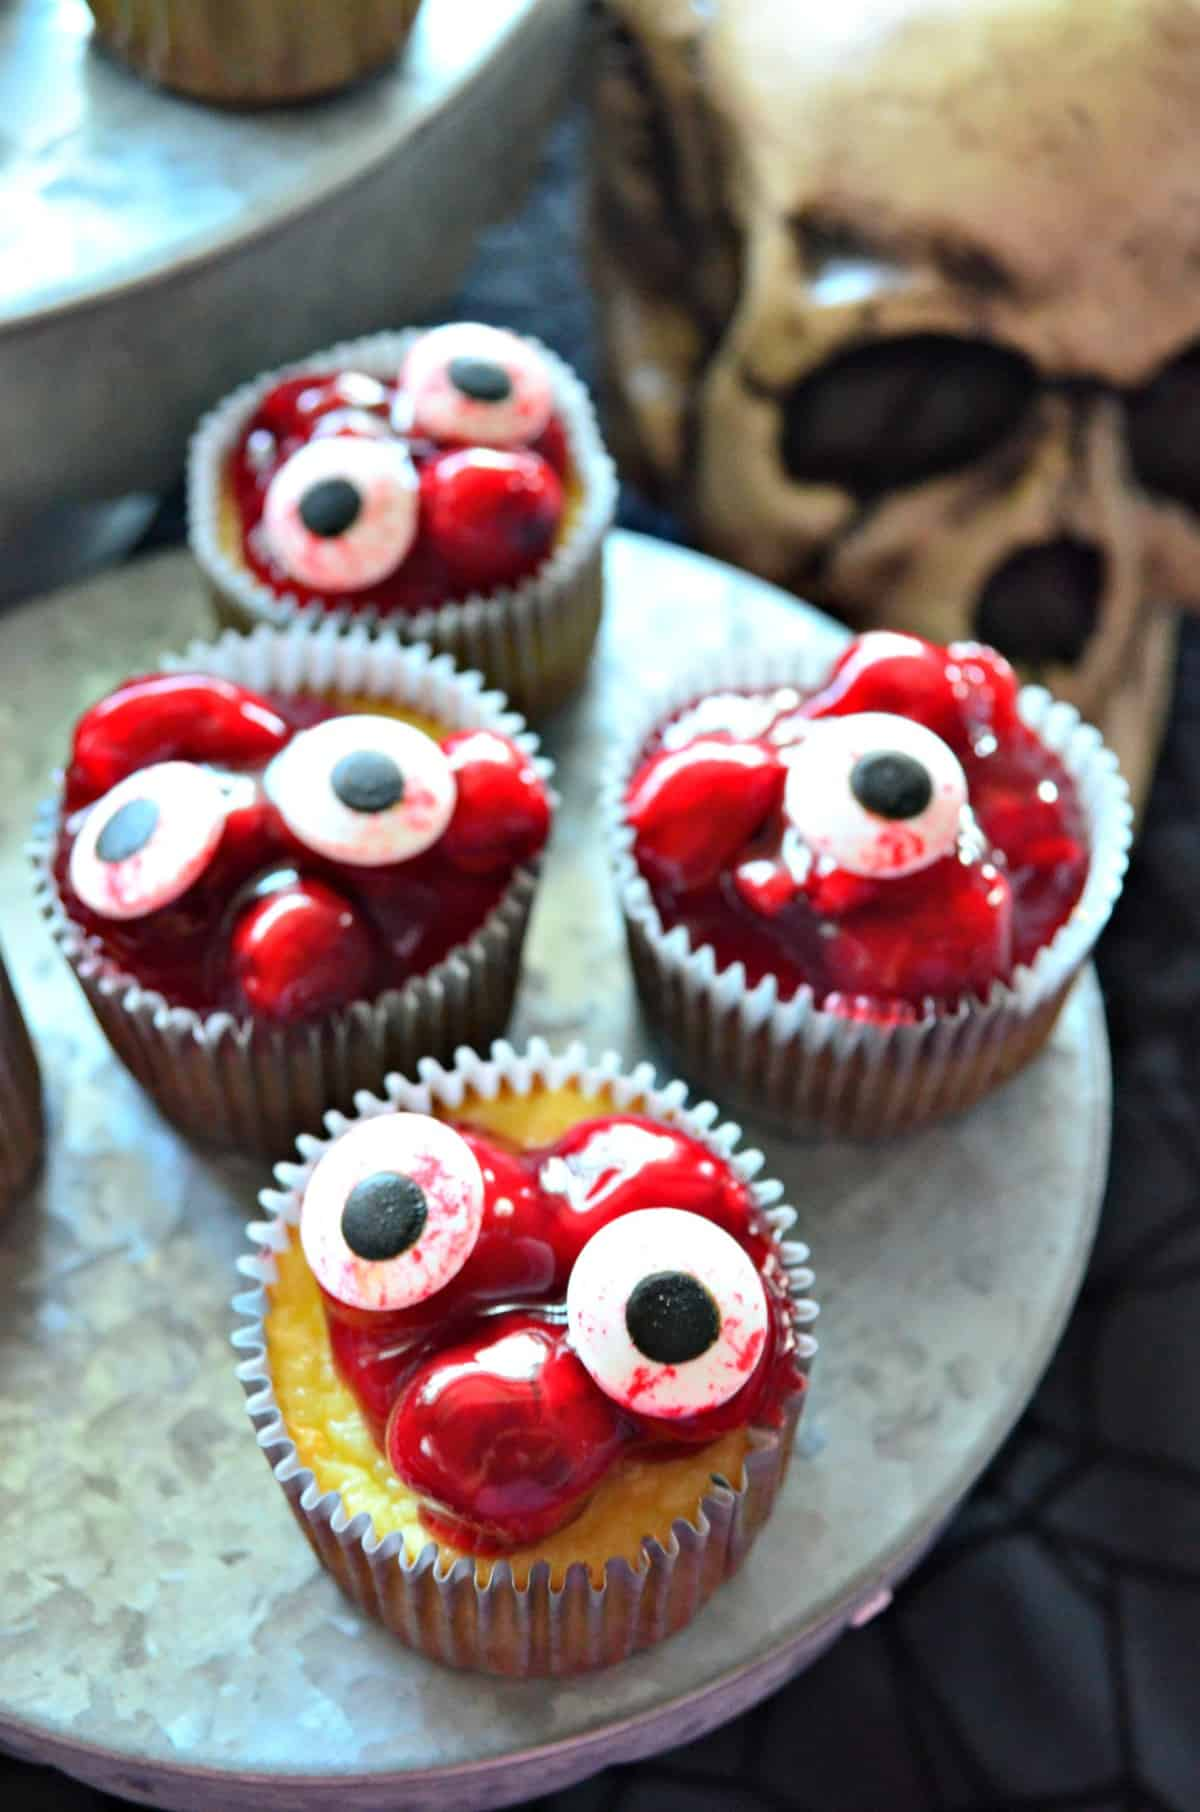 5 cupcakes on cupcake stand topped with red cherries in glaze with candy eyeballs on top.